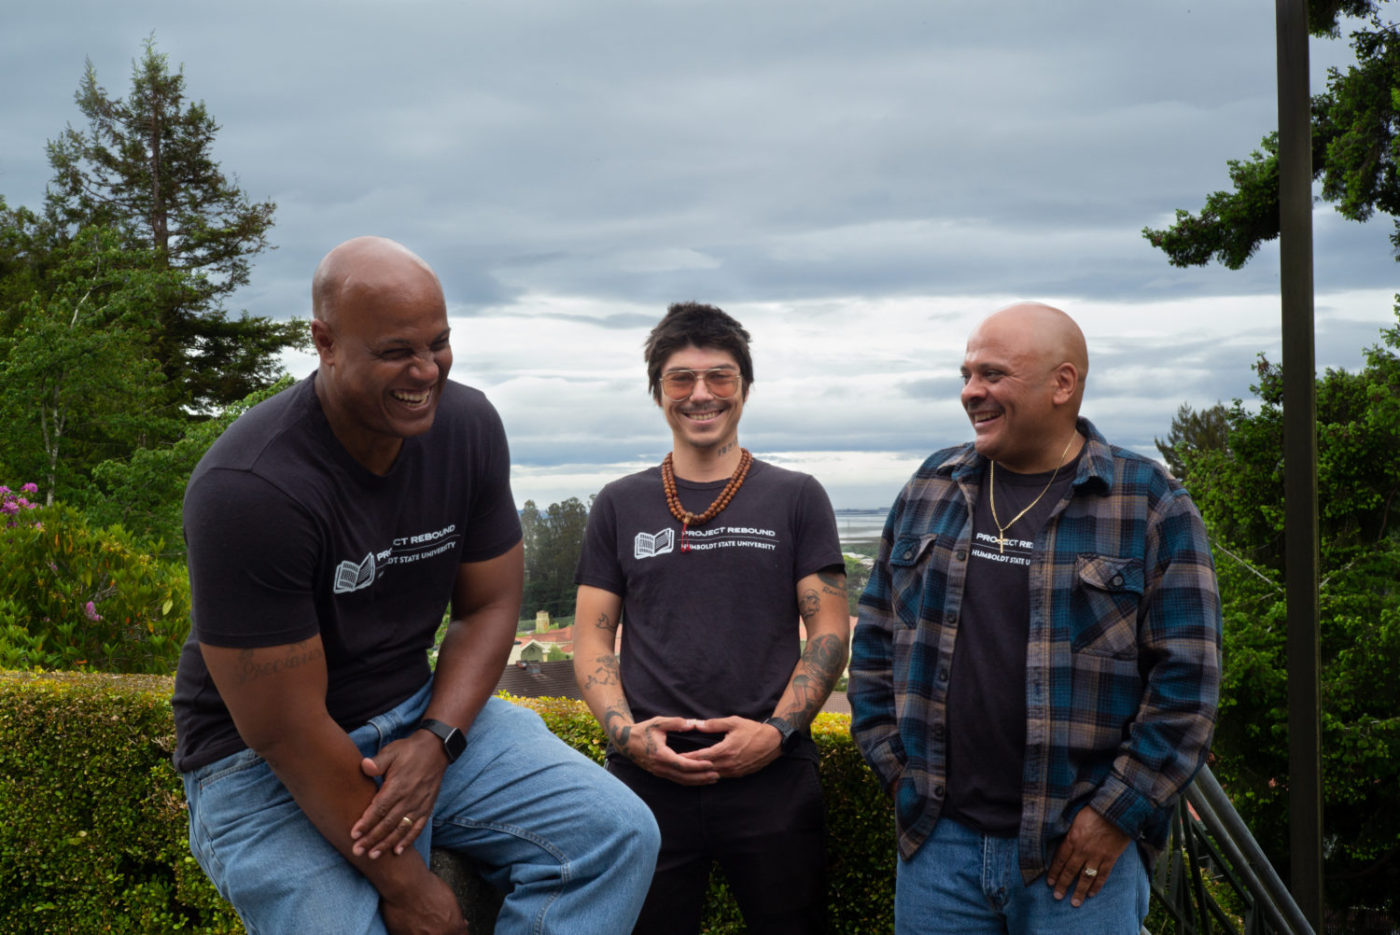 Project-Rebound-students-Eric-Clark-left-Mark-Taylor-flank-program-coordinator-Tony-Wallin-by-Dave-Woody-1400x935, Beacons of hope: Humboldt State's Project Rebound builds a prison-to-college pipeline, Local News & Views